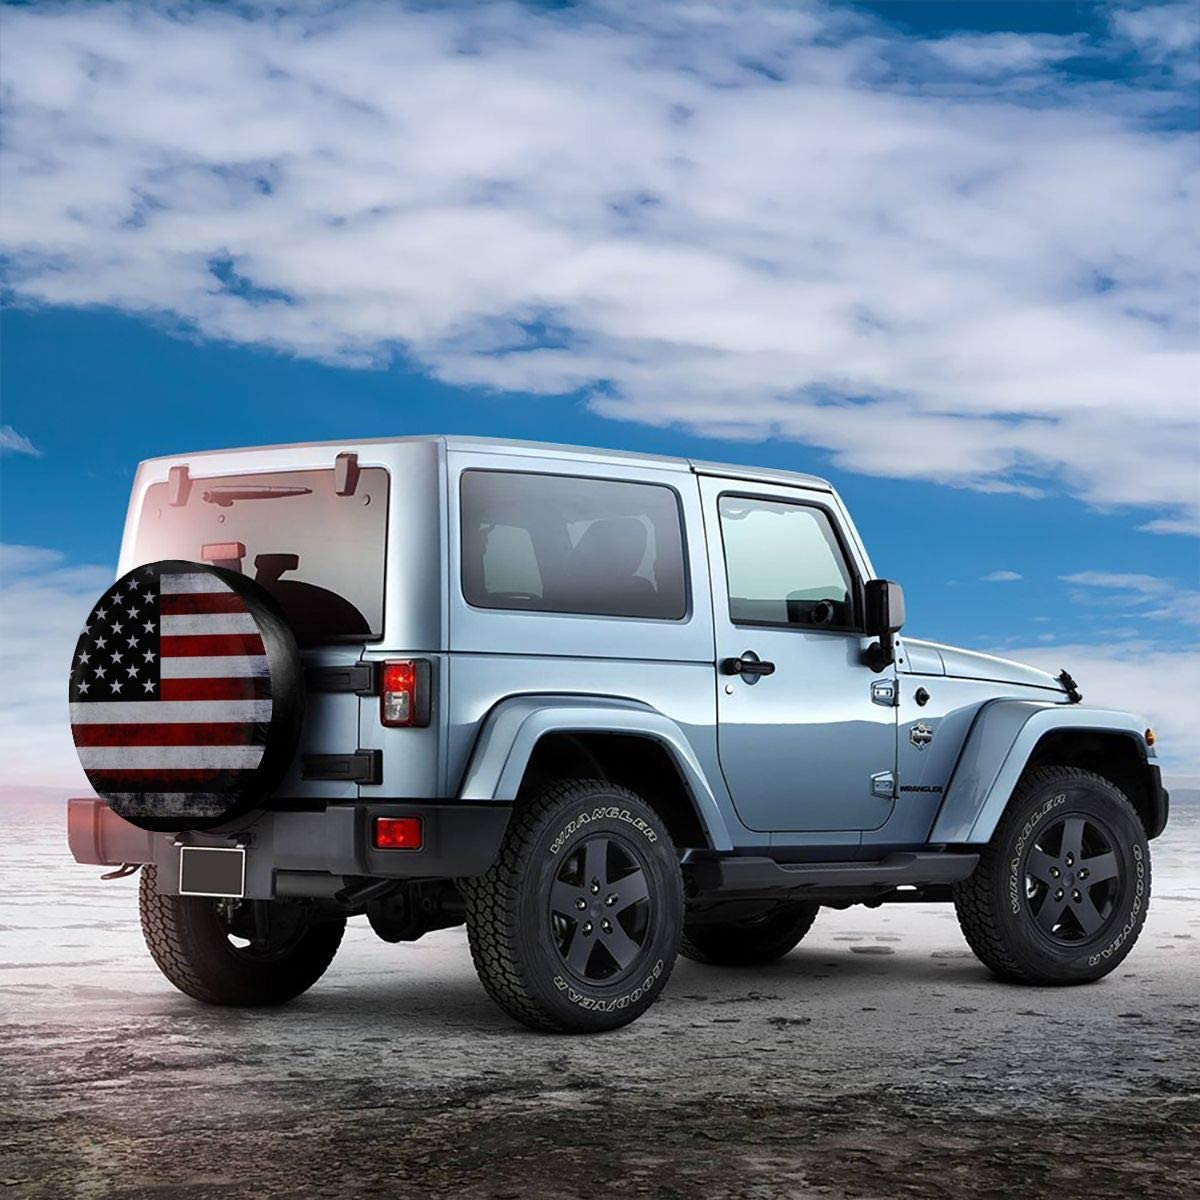 Jackmen Spare Tire Cover American Flag Polyester Universal Sunscreen Corrosion Protection Wheel Covers for Jeep Trailer RV SUV Truck and Many Vehicles 14 15 16 17